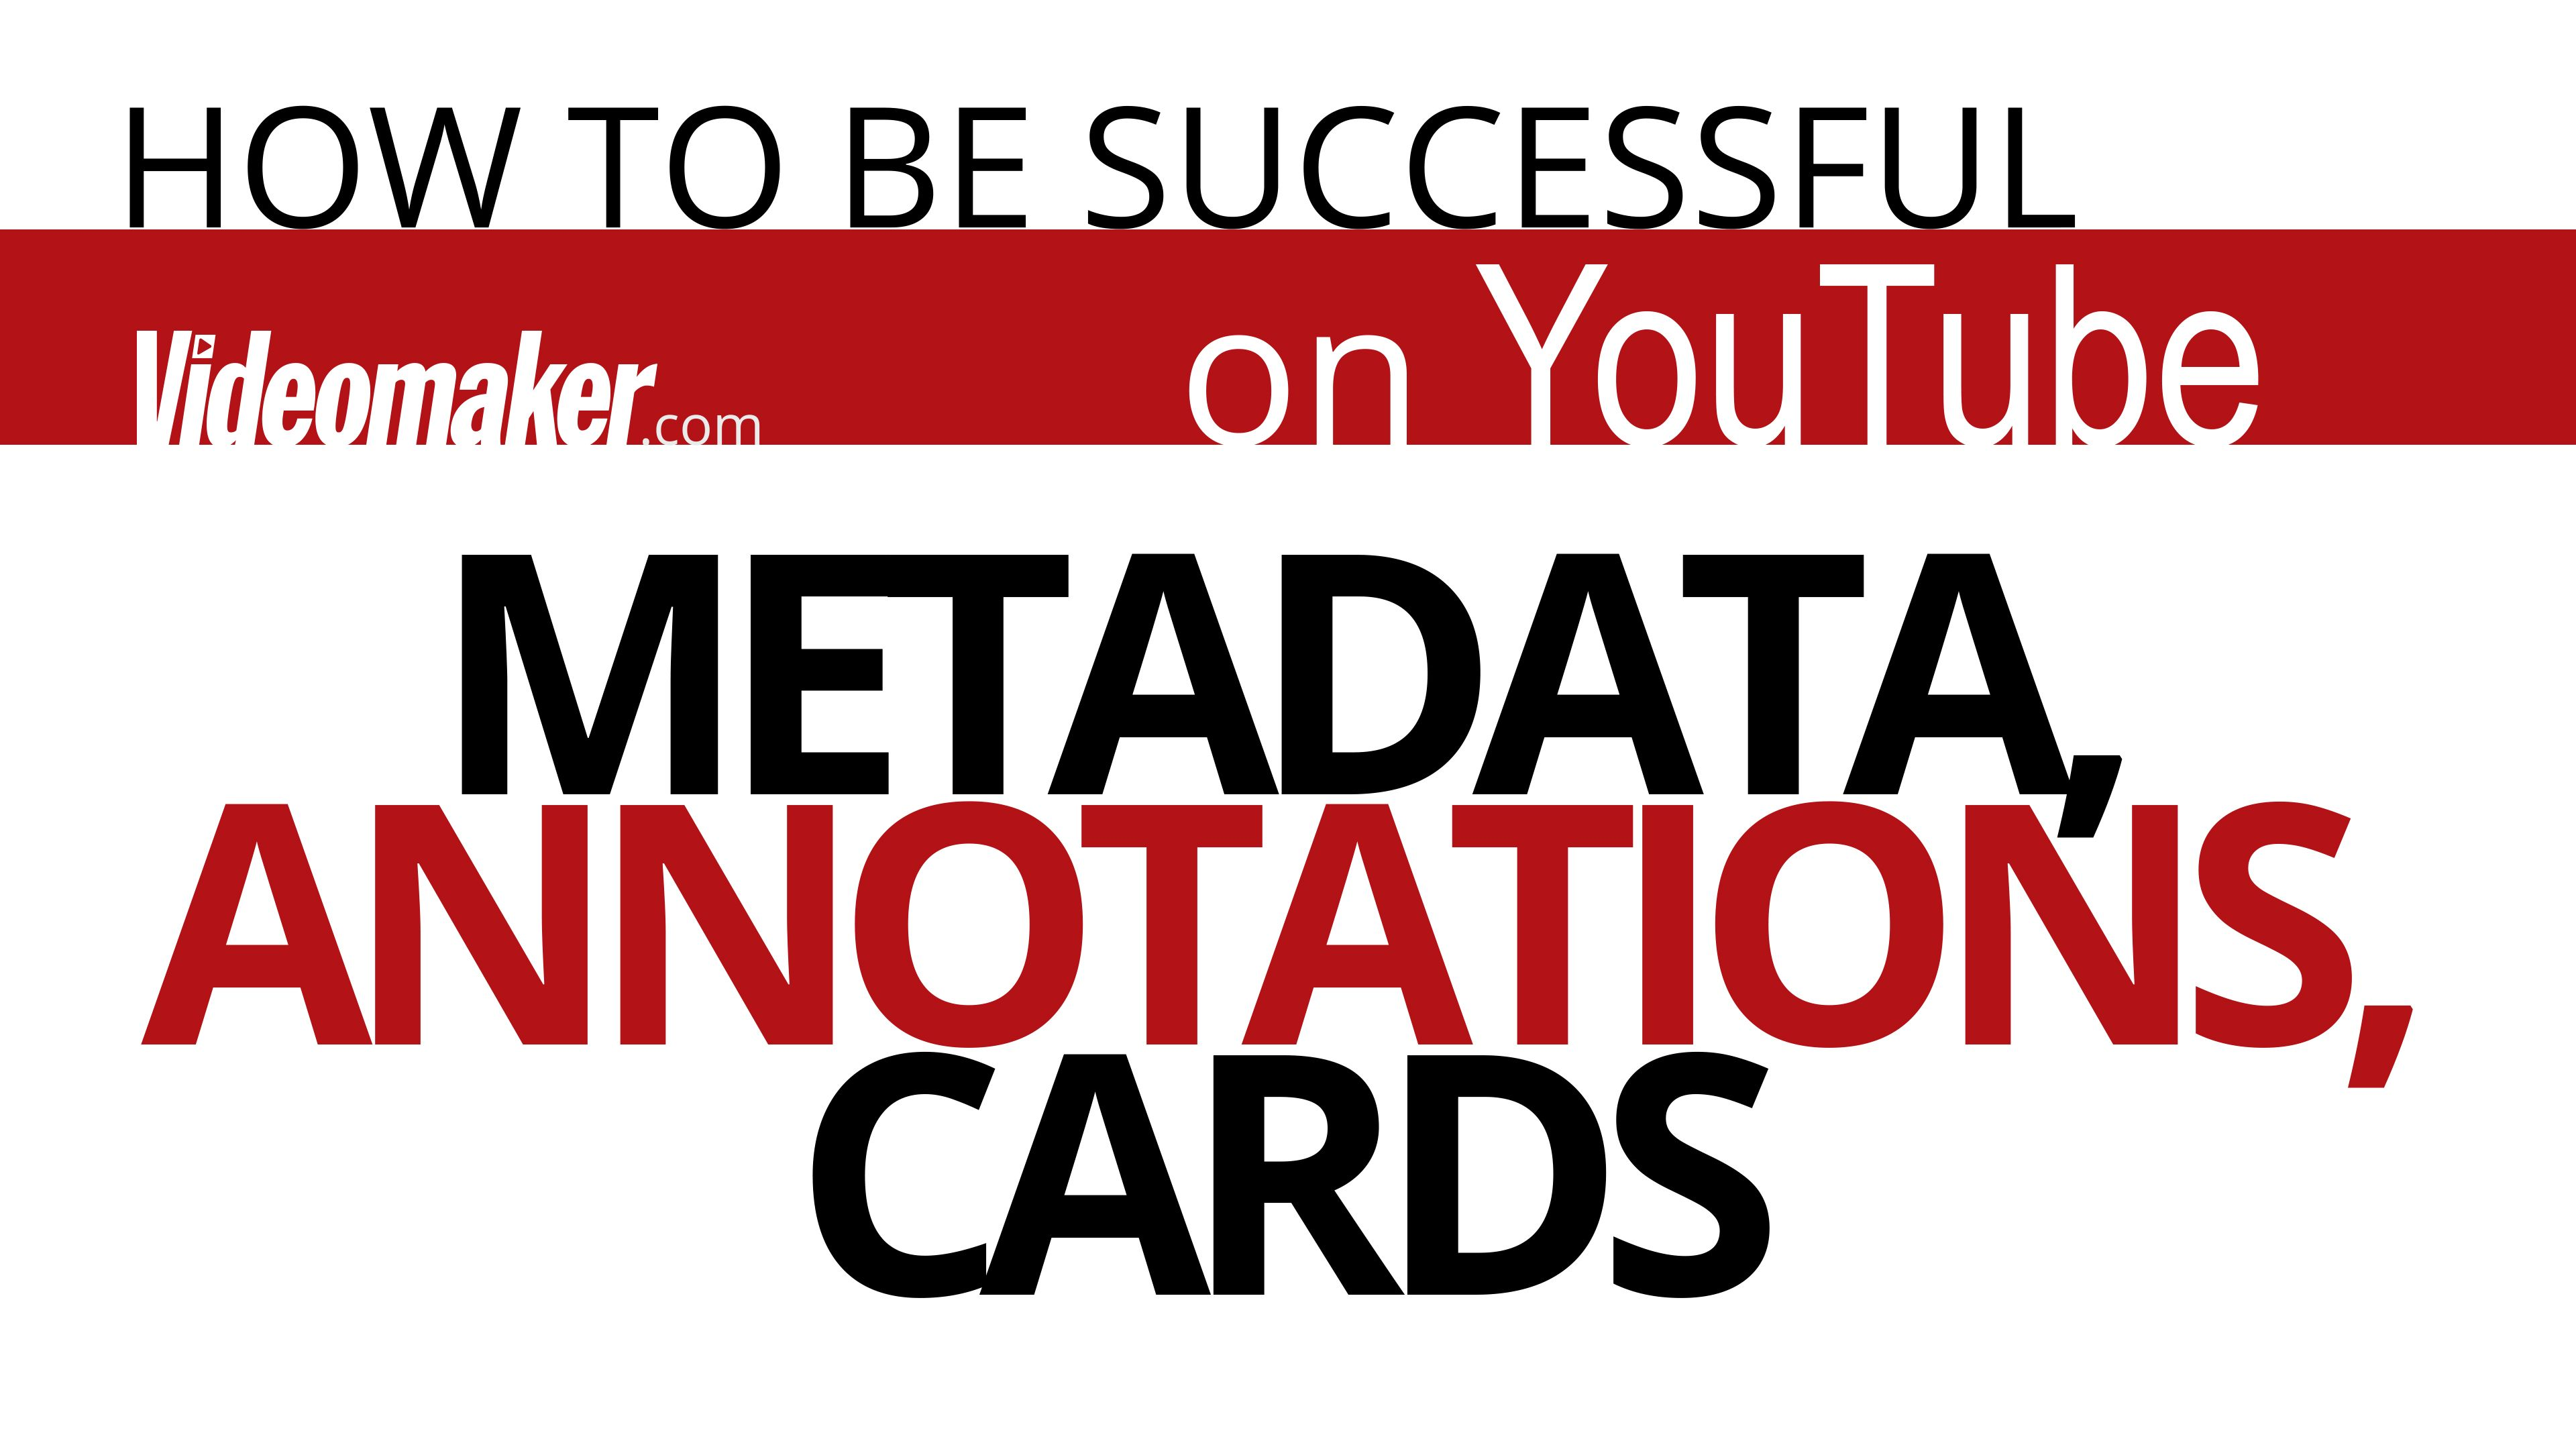 Driving traffic to your video is key to high view count. Metadata, annotations and cards are key for viewer discovery.